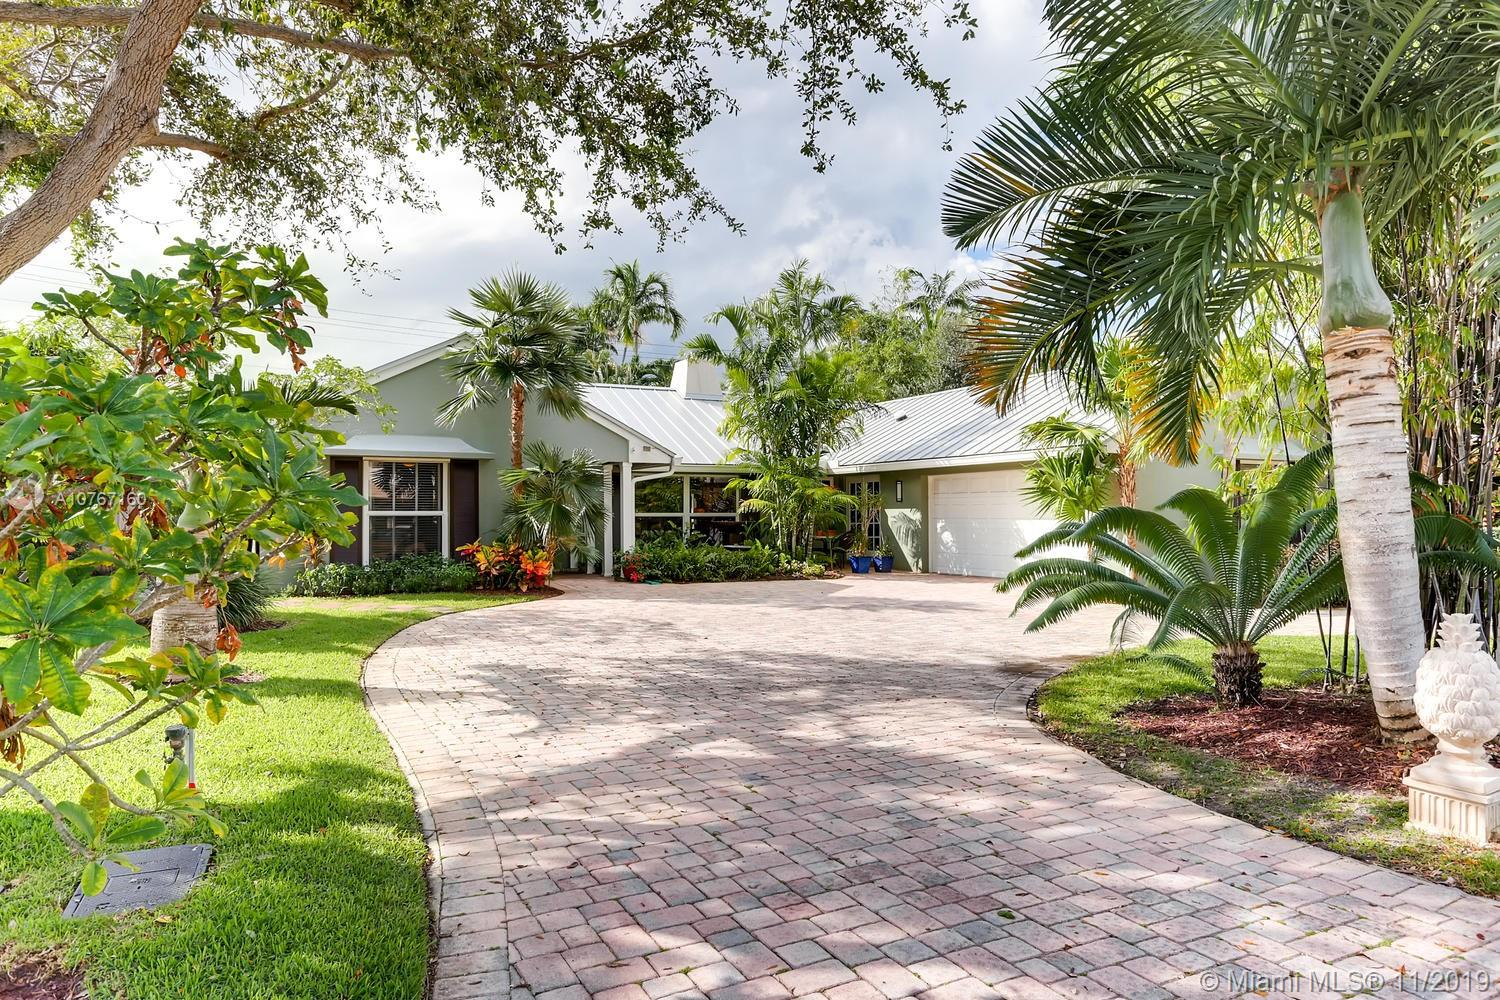 This exquisite Coral Ridge Country Club residence has it all! Prime location minutes away from the beach and walking distance to the golf course. 3 bedrooms, 2.5 bath with covered patio, patio wet bar and heated saltwater POOL! Home interiors include rich hard wood floors throughout, white cabinetry in kitchen with quartz counter-tops and stainless steel appliances. Main living area boasts pool views with a near full wall of sliding glass doors that can be opened wide to enjoy the Florida sea breeze in your tropical oasis. New roof, HVAC, A/C Ductwork, sprinkler system, impact Windows throughout entire home, and so much more. Schedule your showing today!